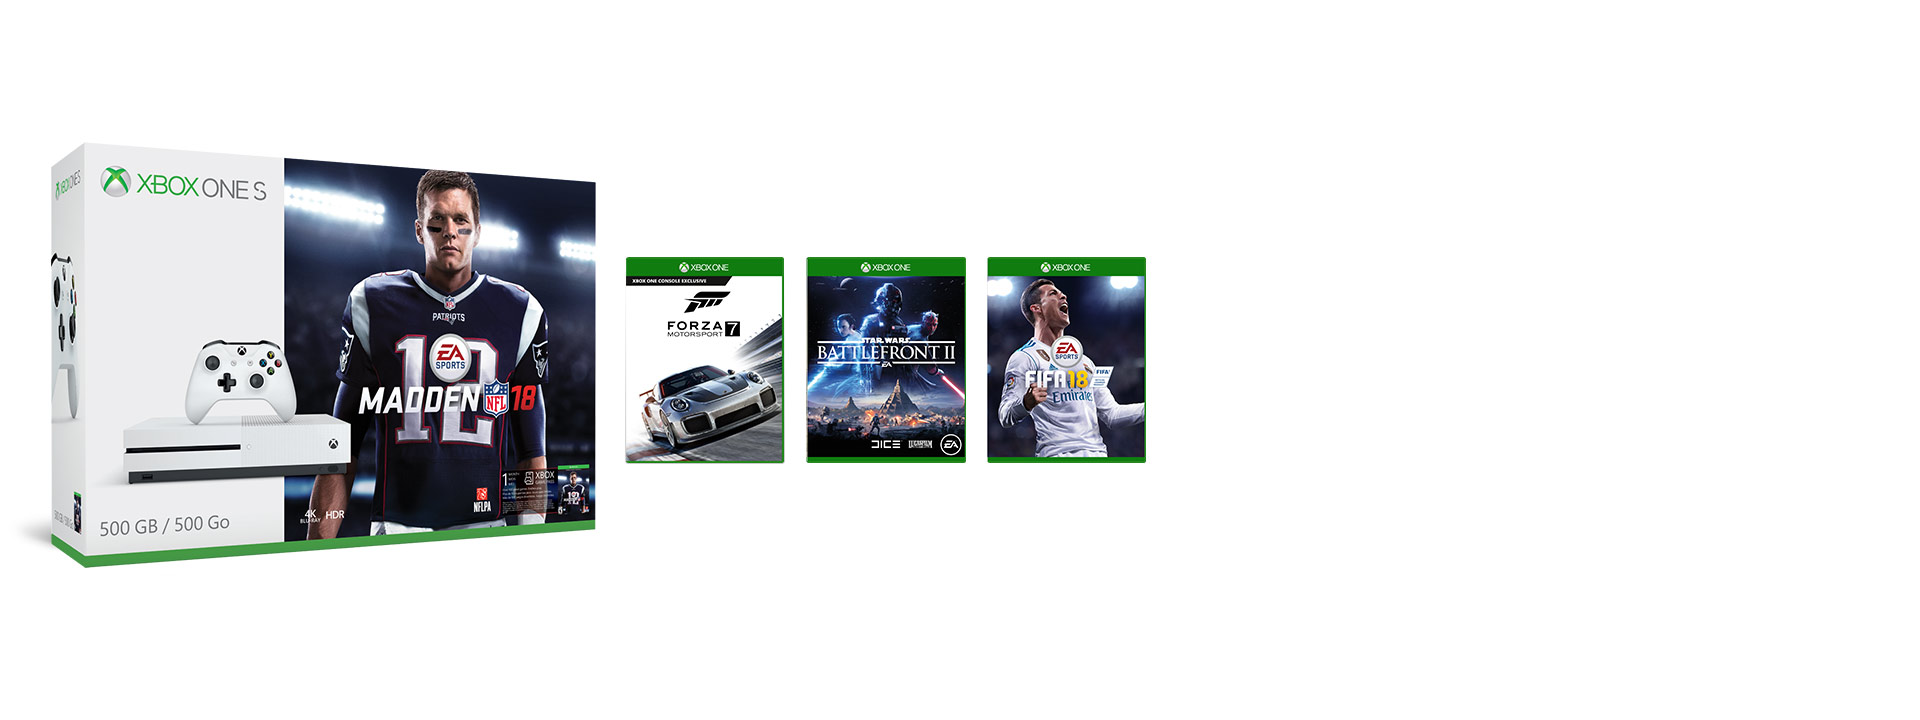 Xbox One S Forza Horizon 3 Hot Wheels with 3 games - Forza 7 - Assassins Creed Origins - Shadow of War